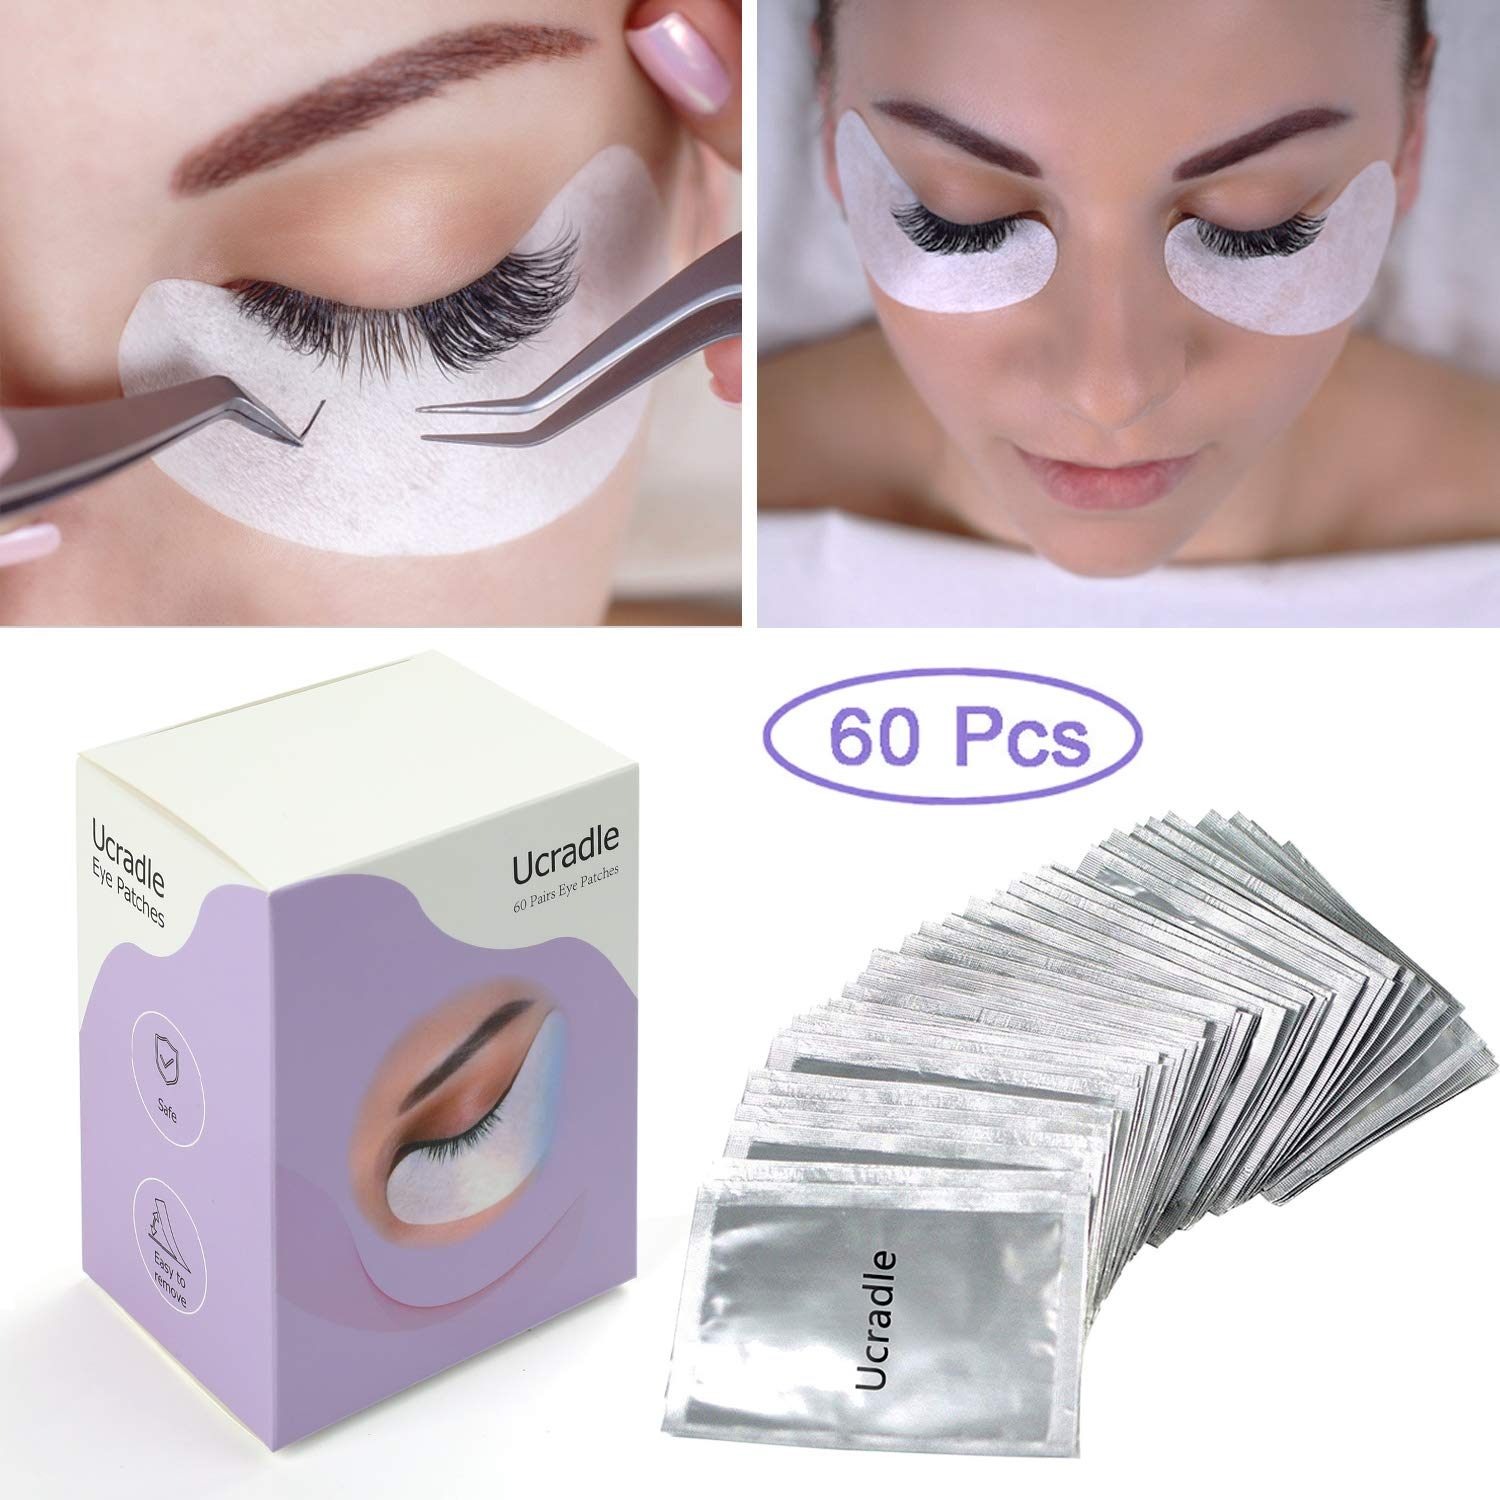 98ae9c8e0a2 Under Eye Gel Pads - 60 Pairs Eyelash Extension Pads Lints Free, Eyelash  Patches product